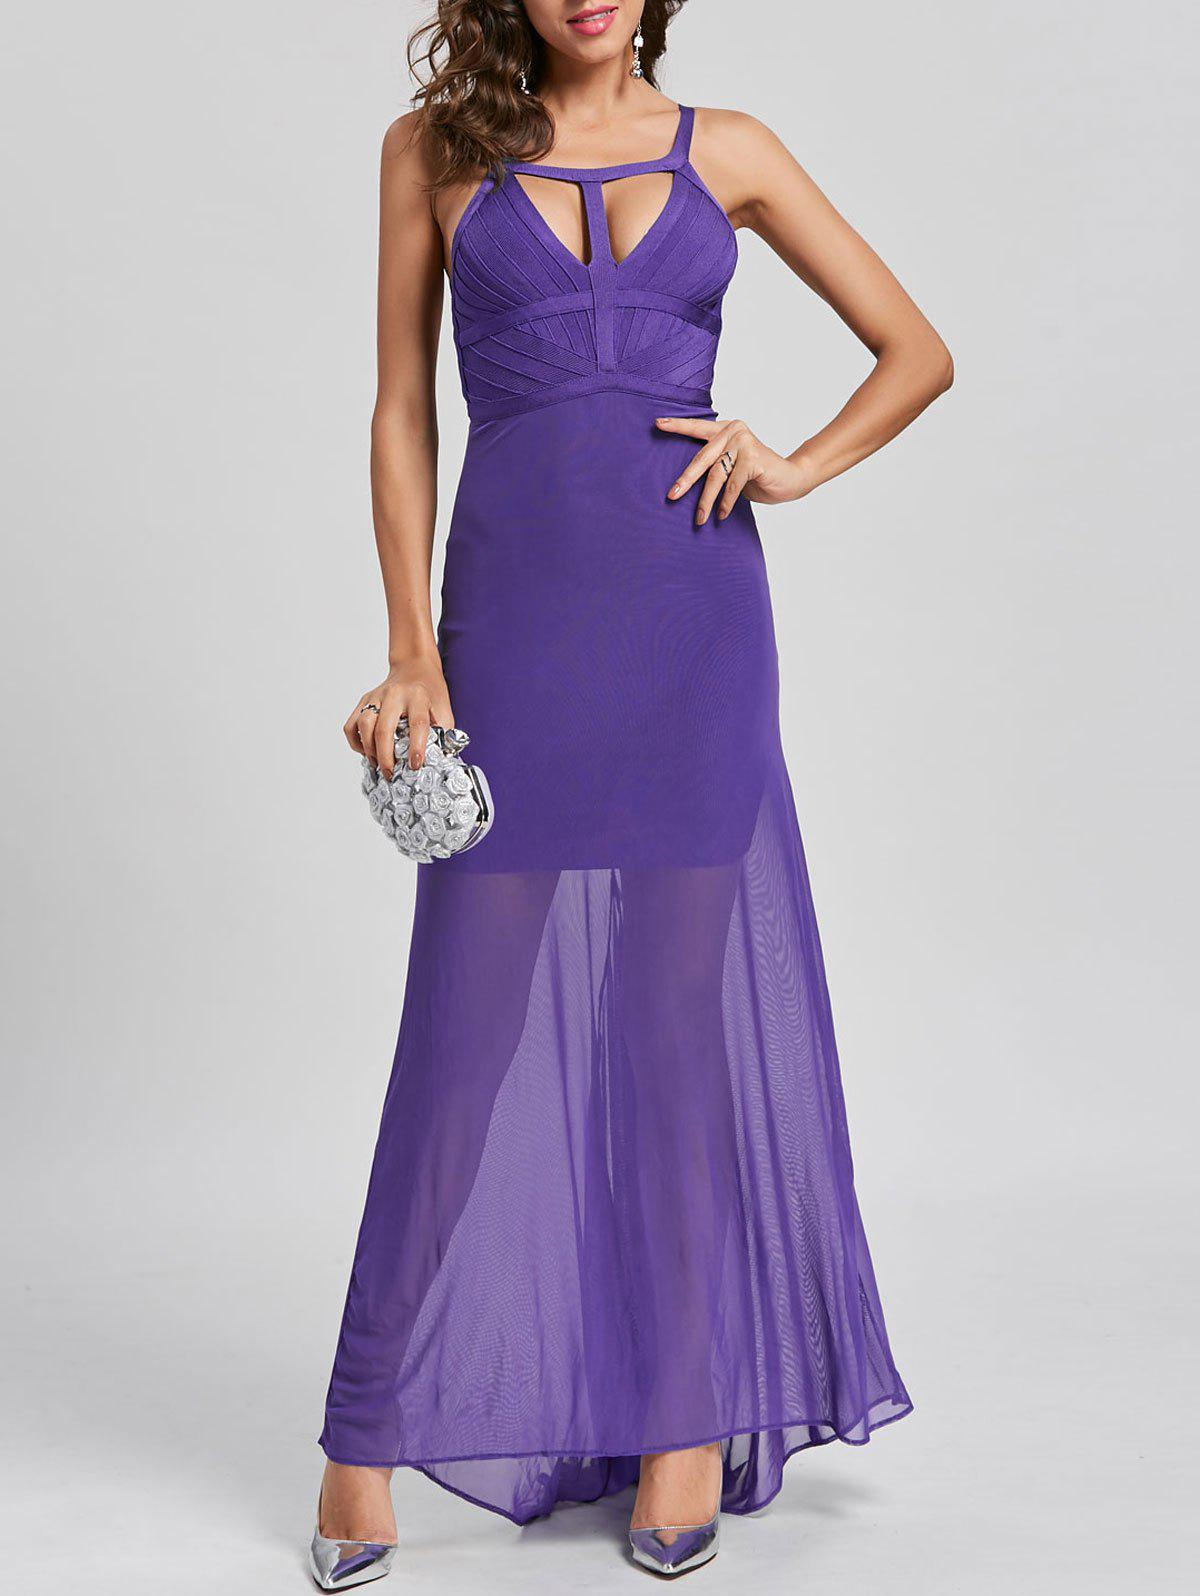 Cut Out Sheer Maxi Bandage Dress - PURPLE M